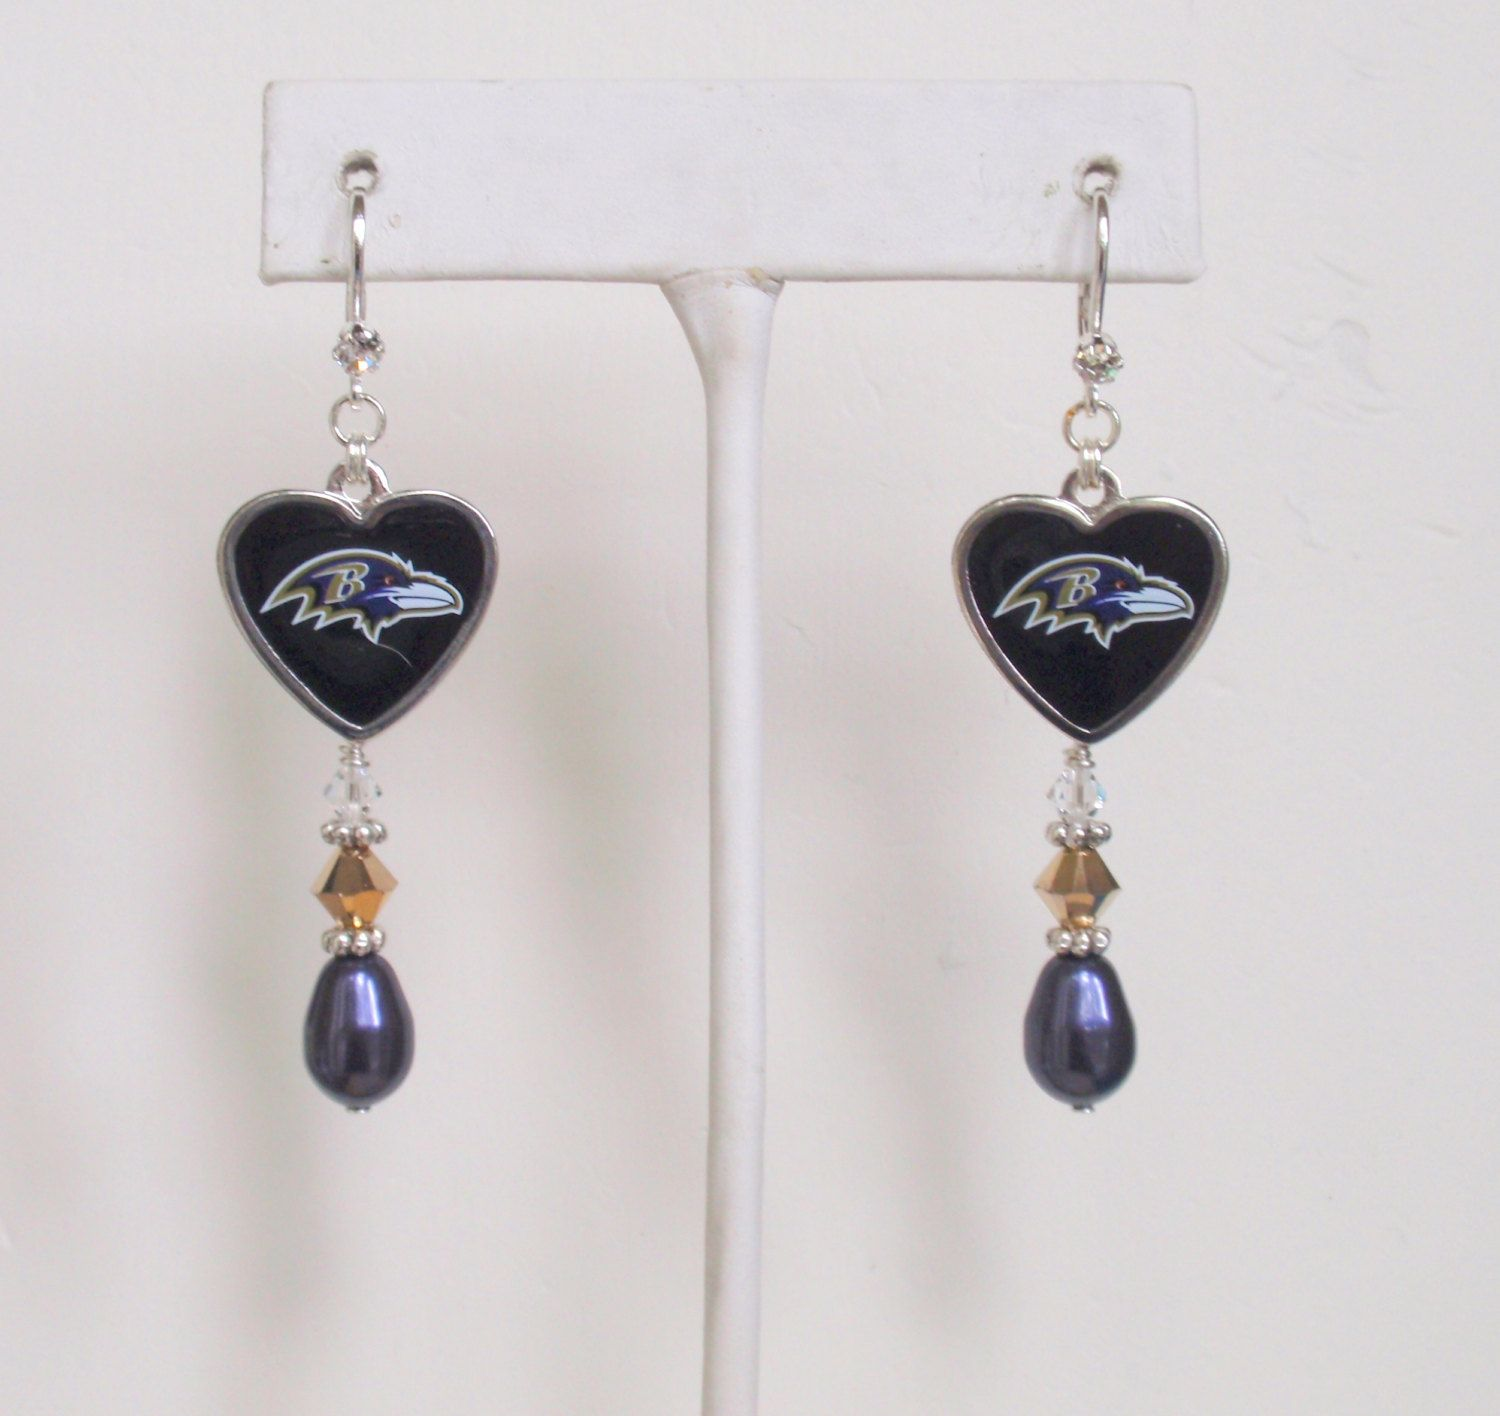 Baltimore Ravens Earrings, Little Piece of My Heart Swarovski Purple Pearl and Crystal Leverback Pro Football Earrings and Accessories by scbeachbling on Etsy